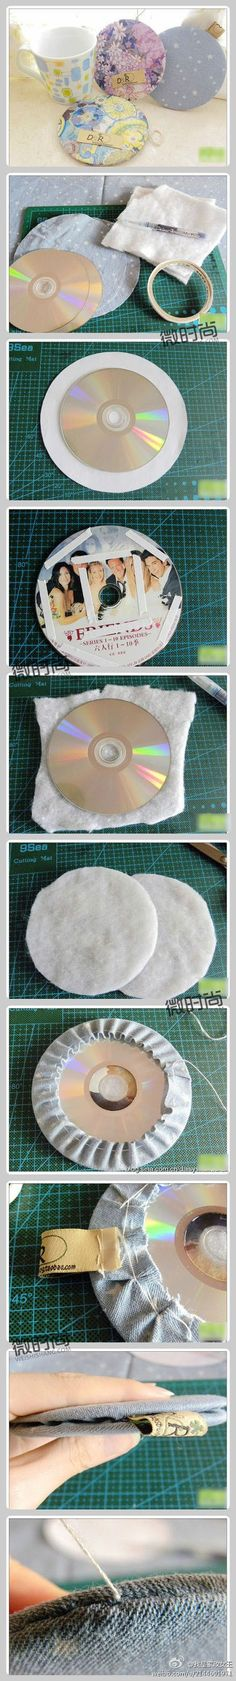 [DIY] old CD coasters coasters transfiguration personality and beautiful Oh ~ ~ # ~ also # recycling interested children's shoes do not miss it ~